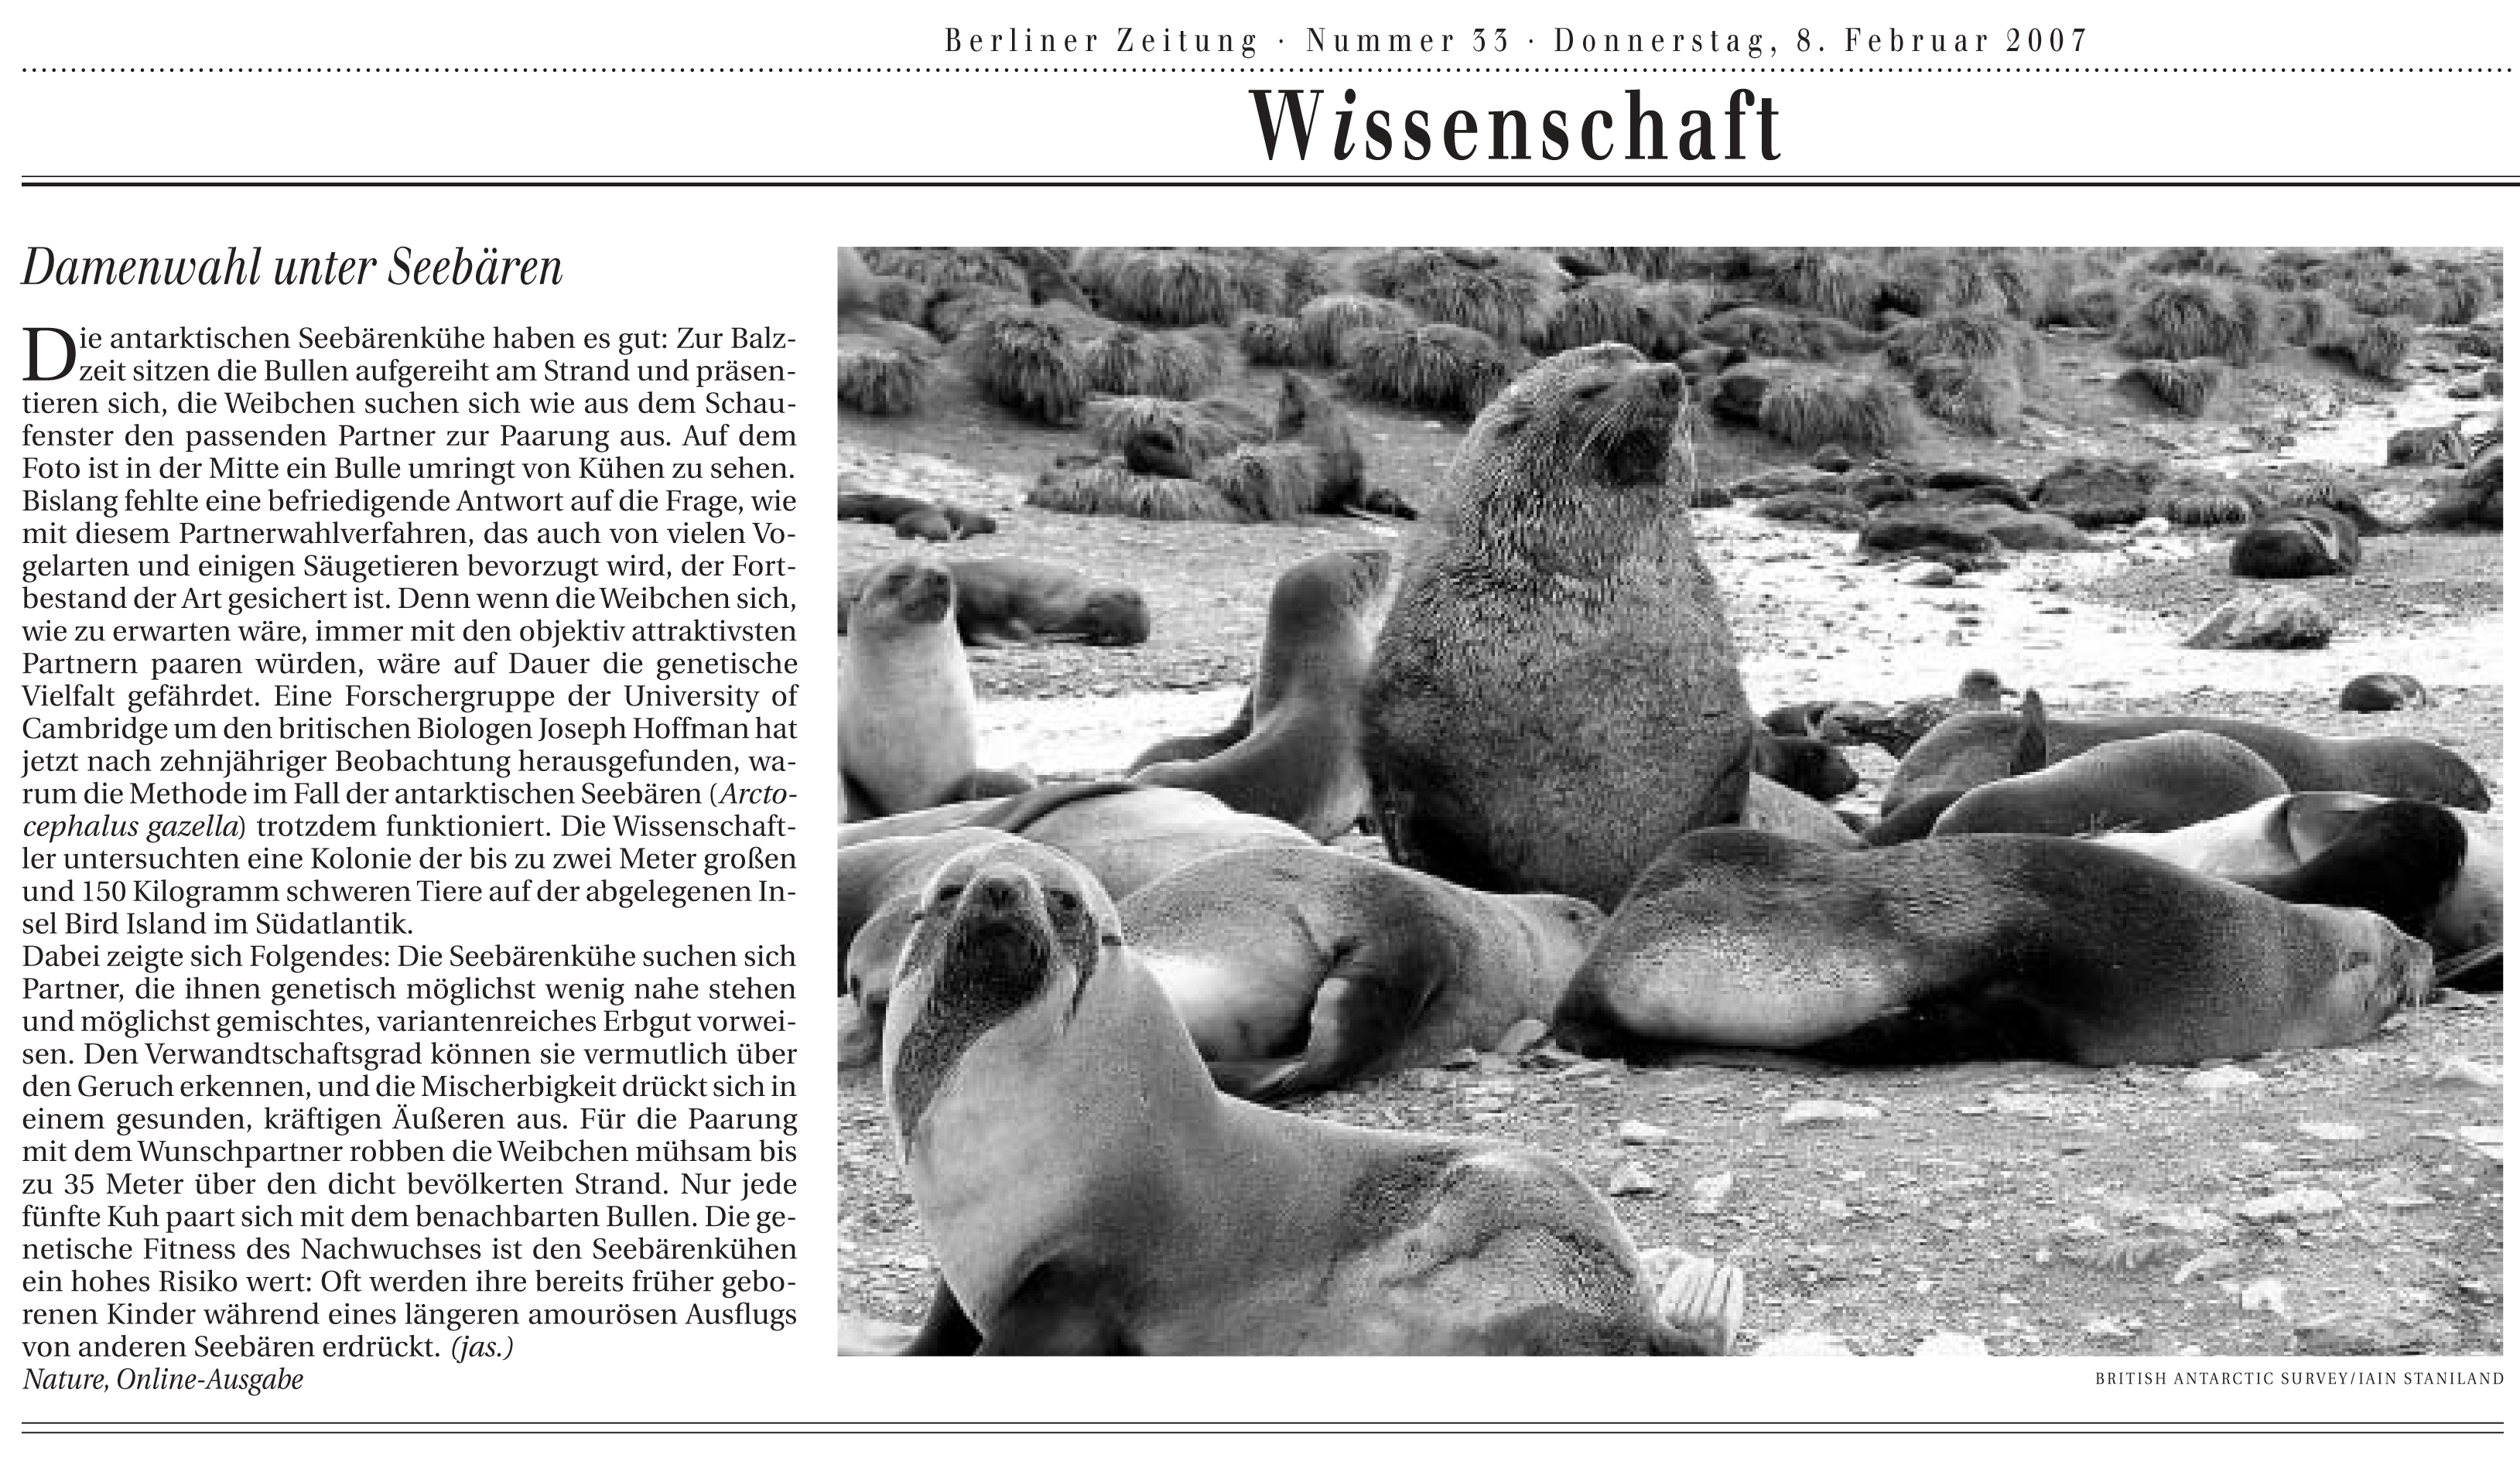 Article in the Berliner Zeitung, 2007